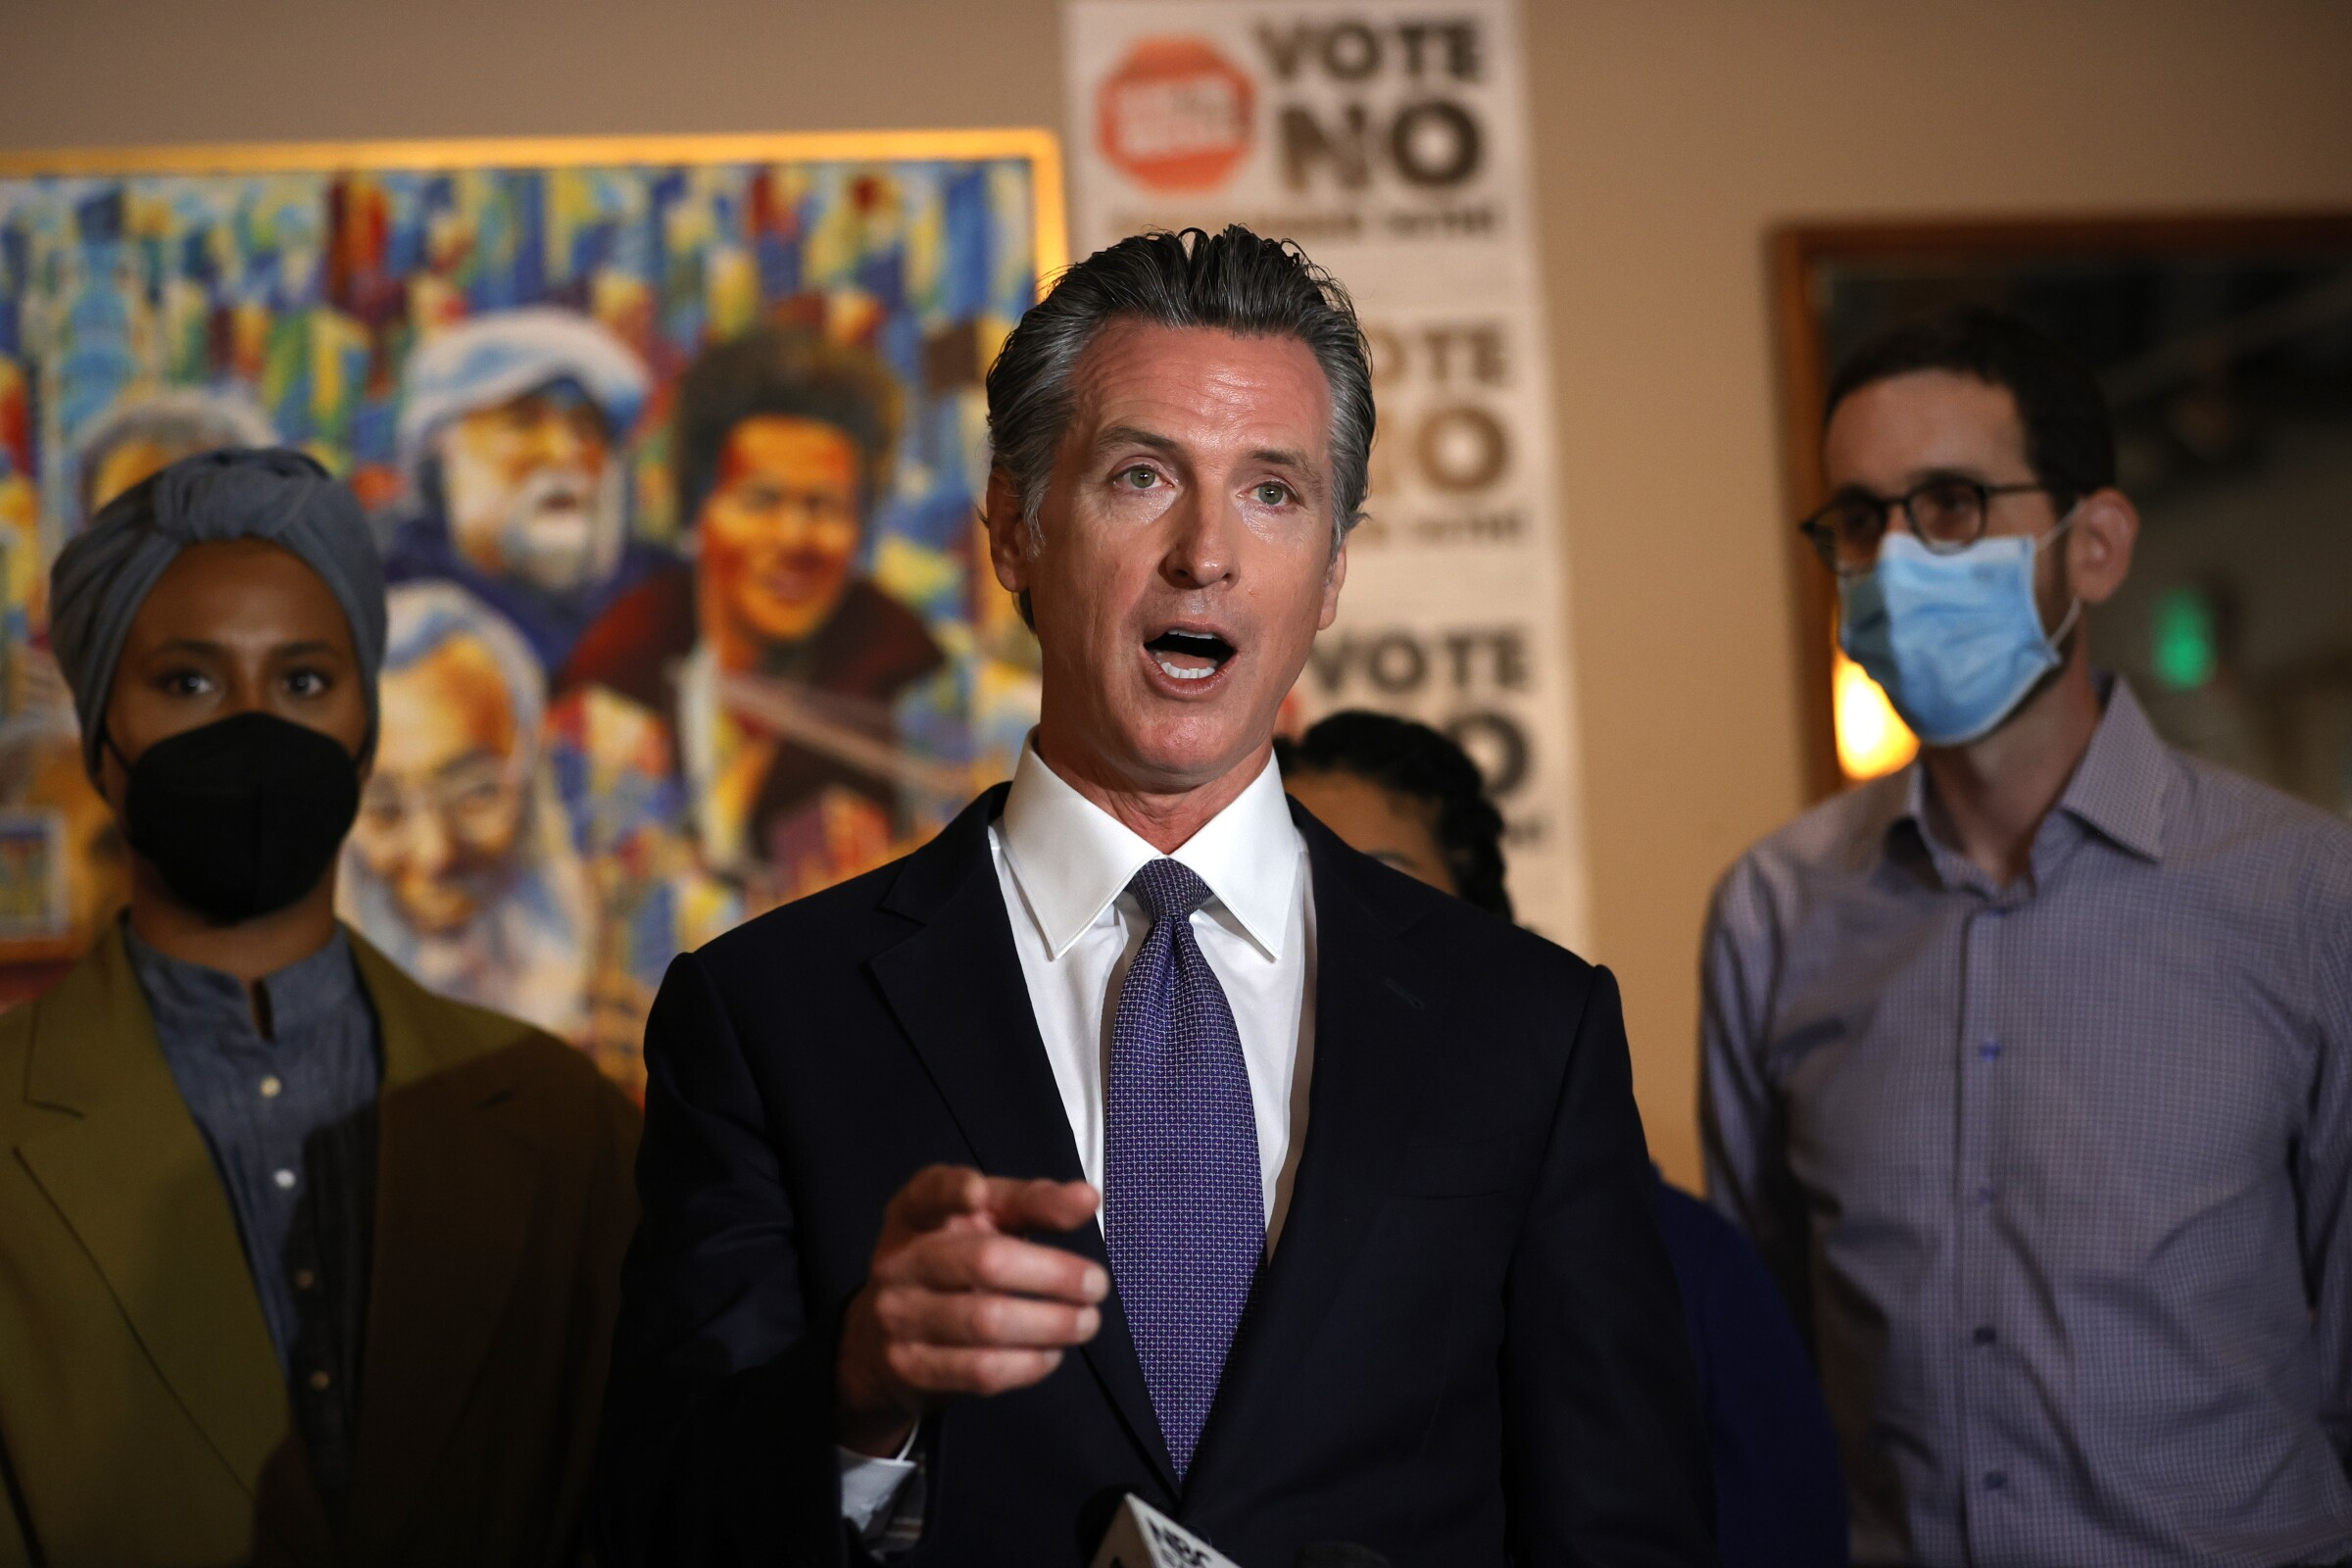 Gavin Newsom, in suit and tie with two people in masks behind him, speaks to media.